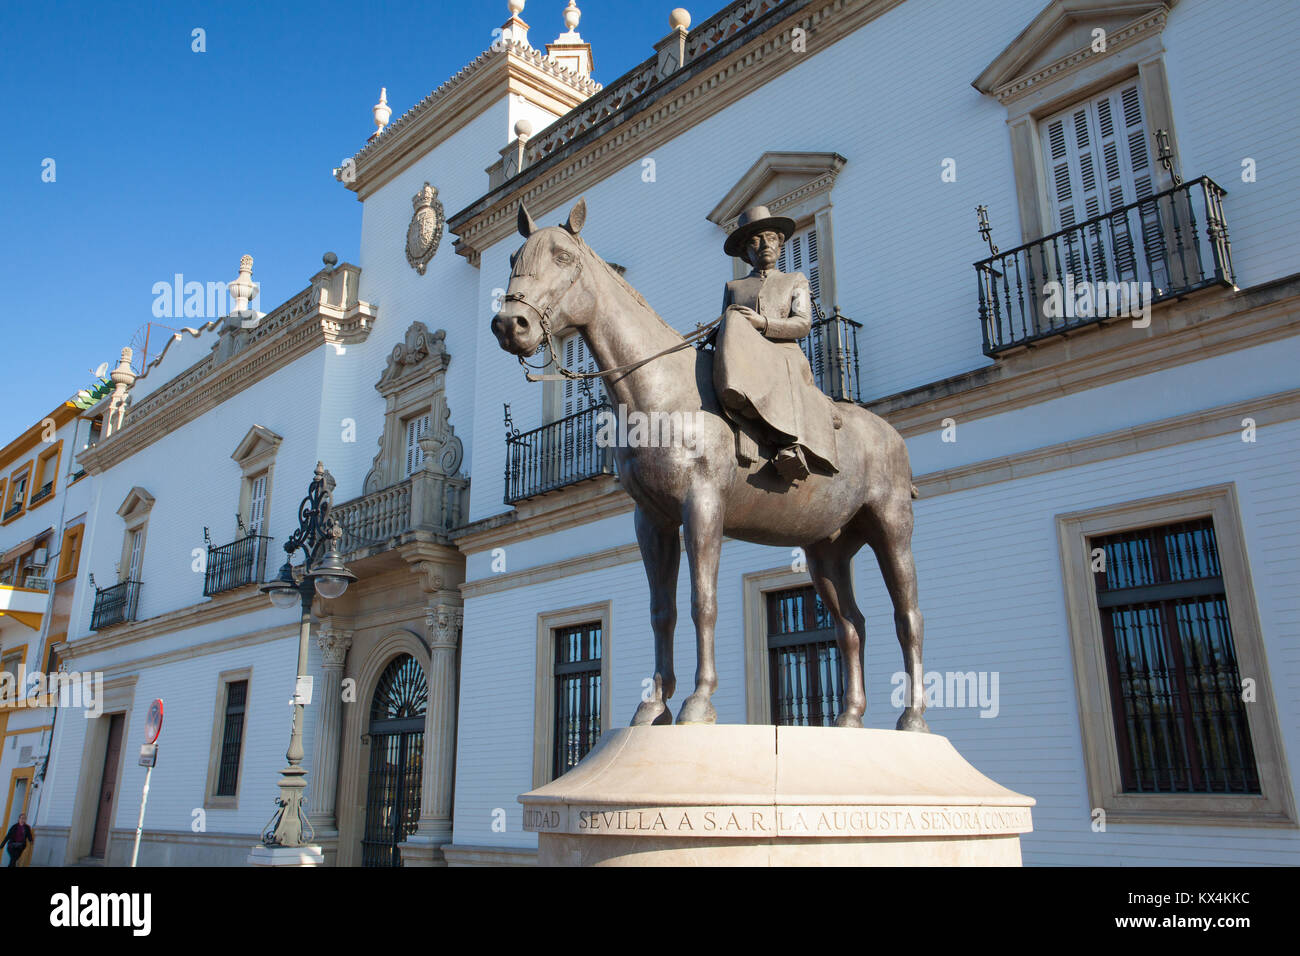 Seville, Spain - November 19,2016: Bullfight arena.View of the facade of Real Maestranza de Caballeria and the monument - Stock Image